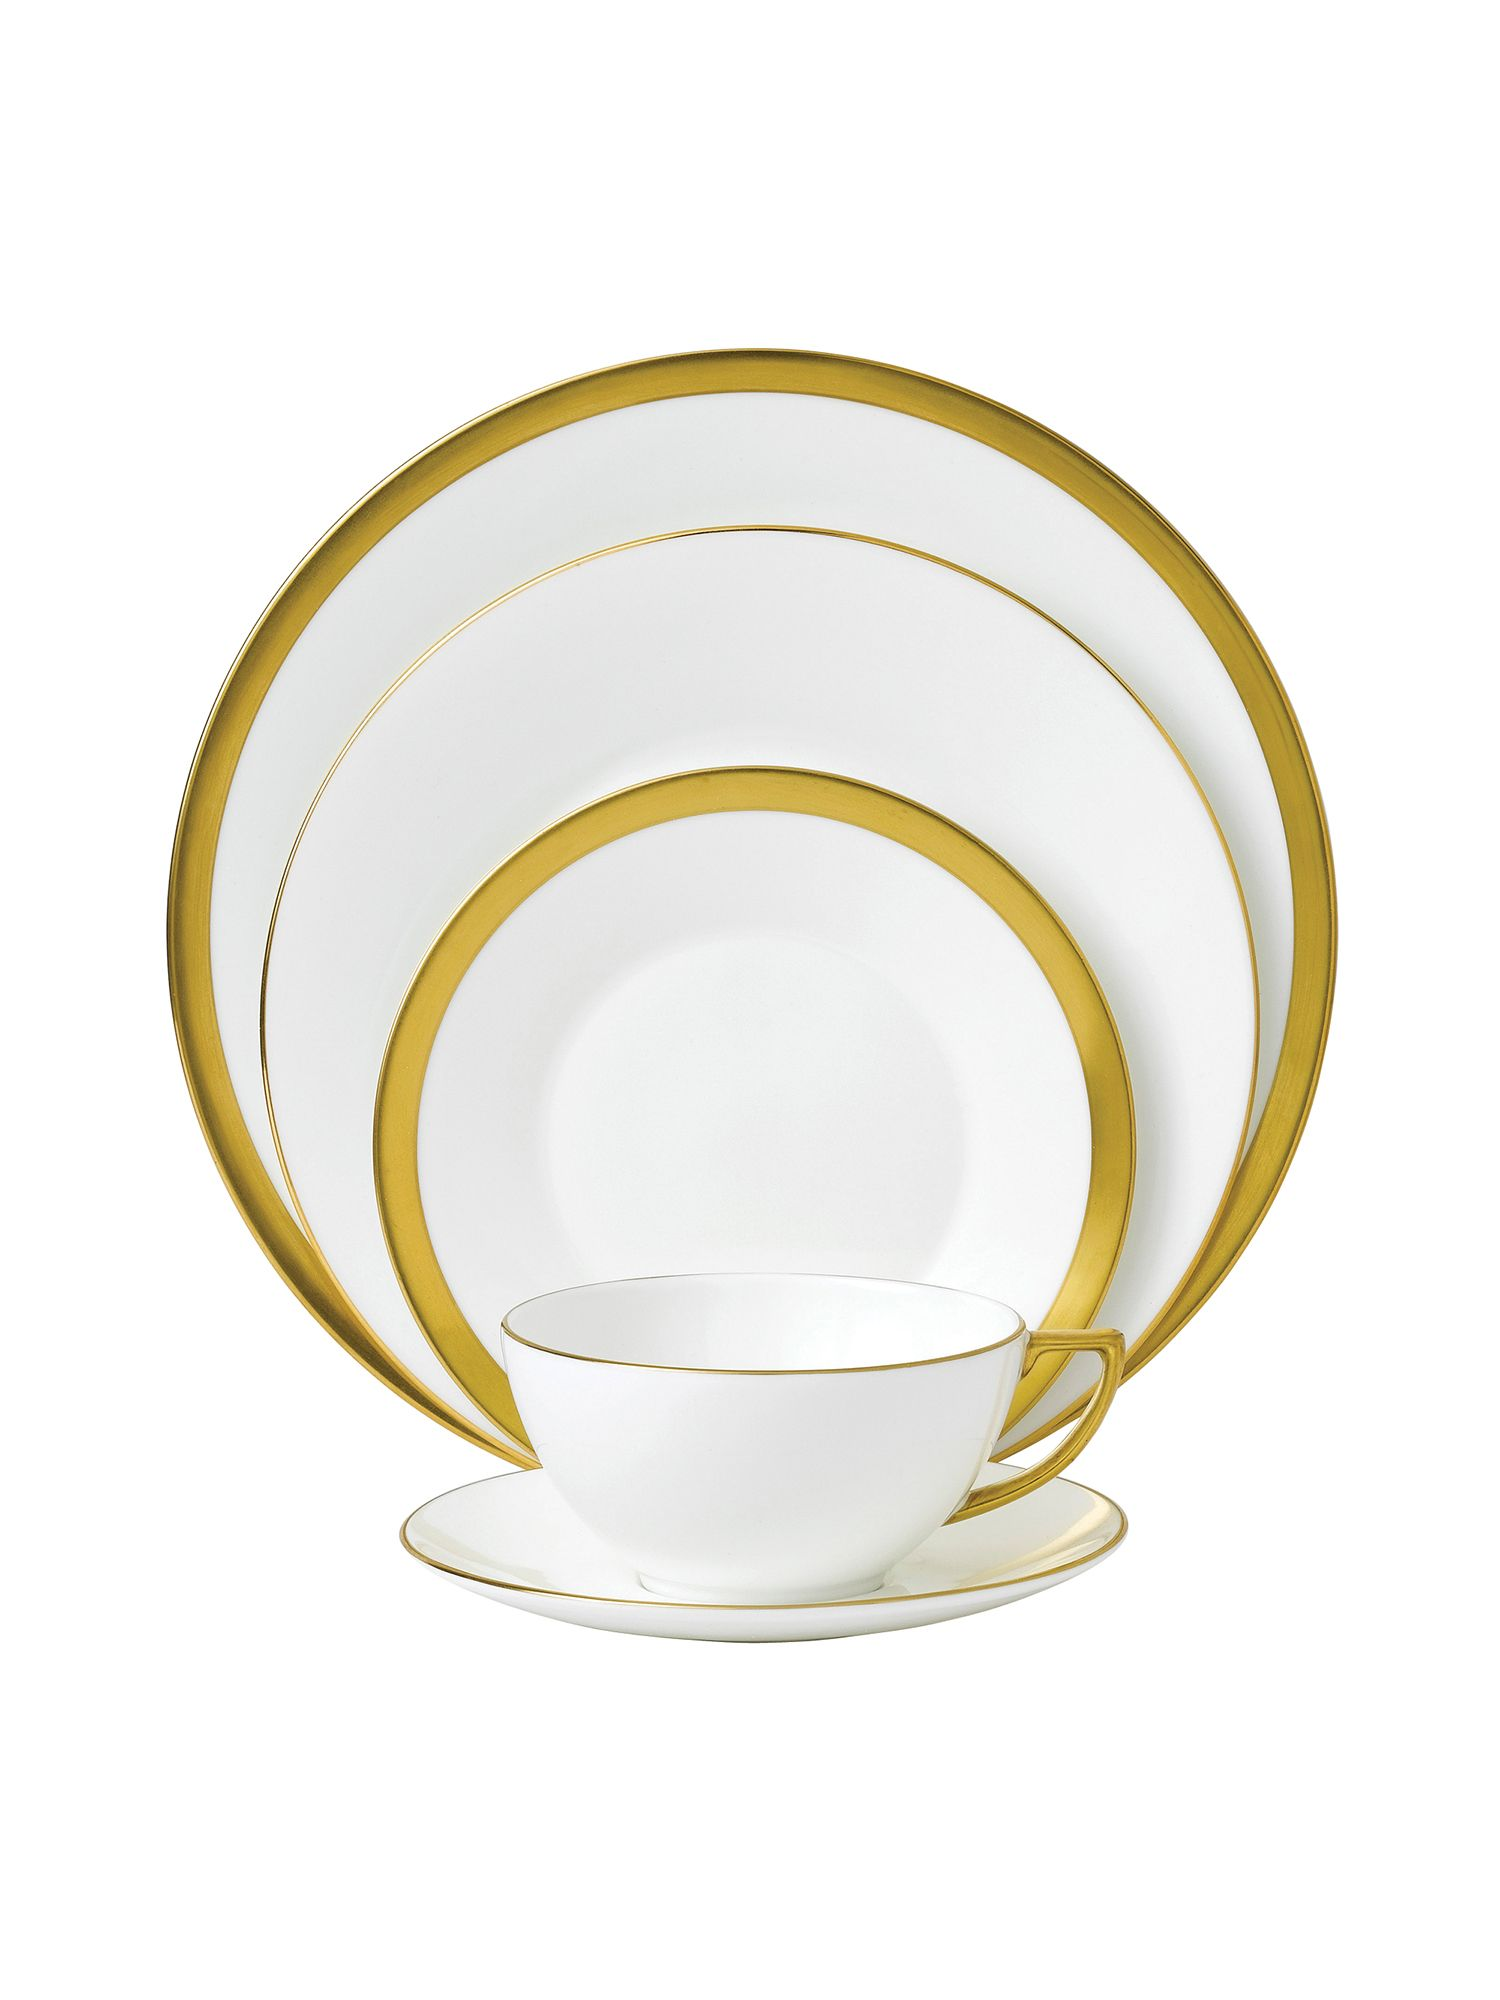 Jasper conran bone china gold pinstripe plate 27c